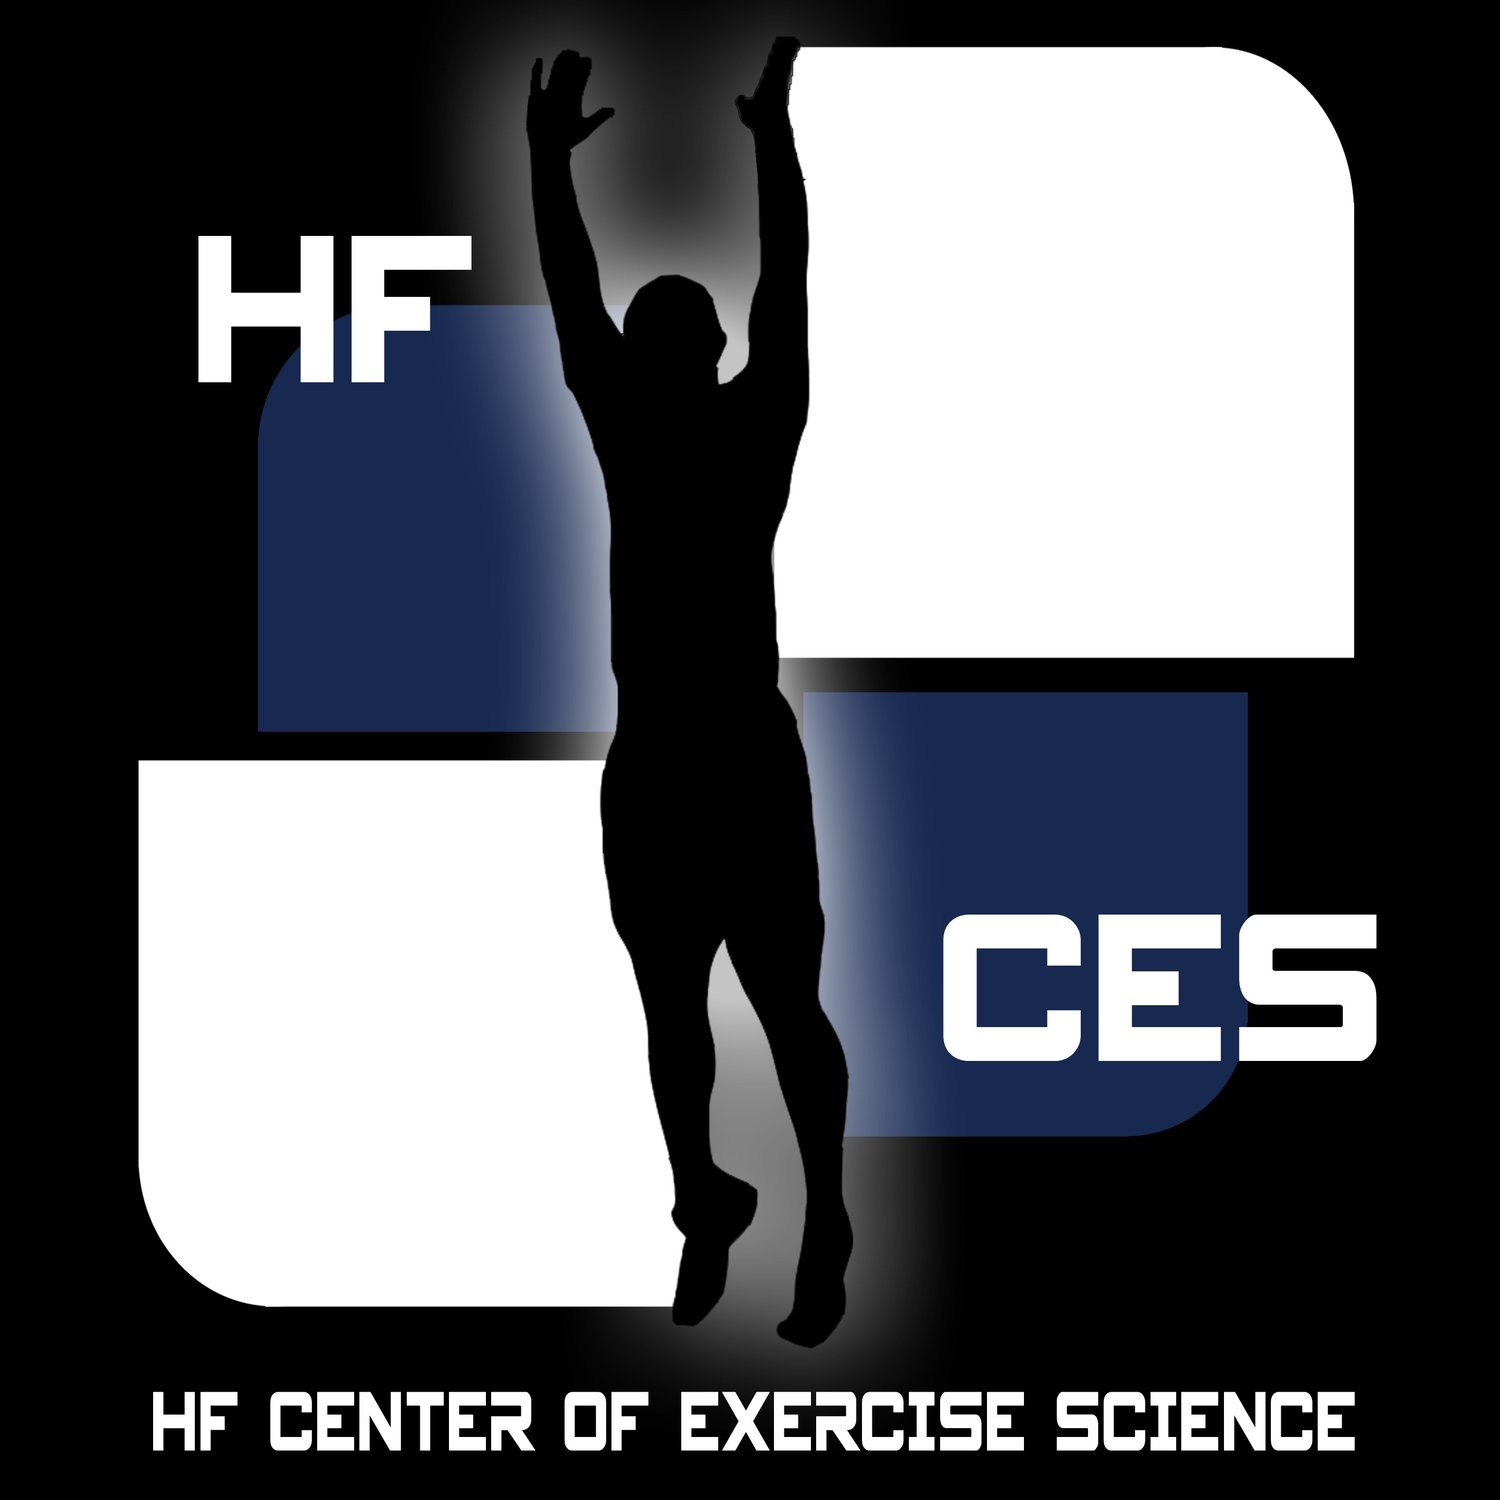 HF Center of Exercise Science